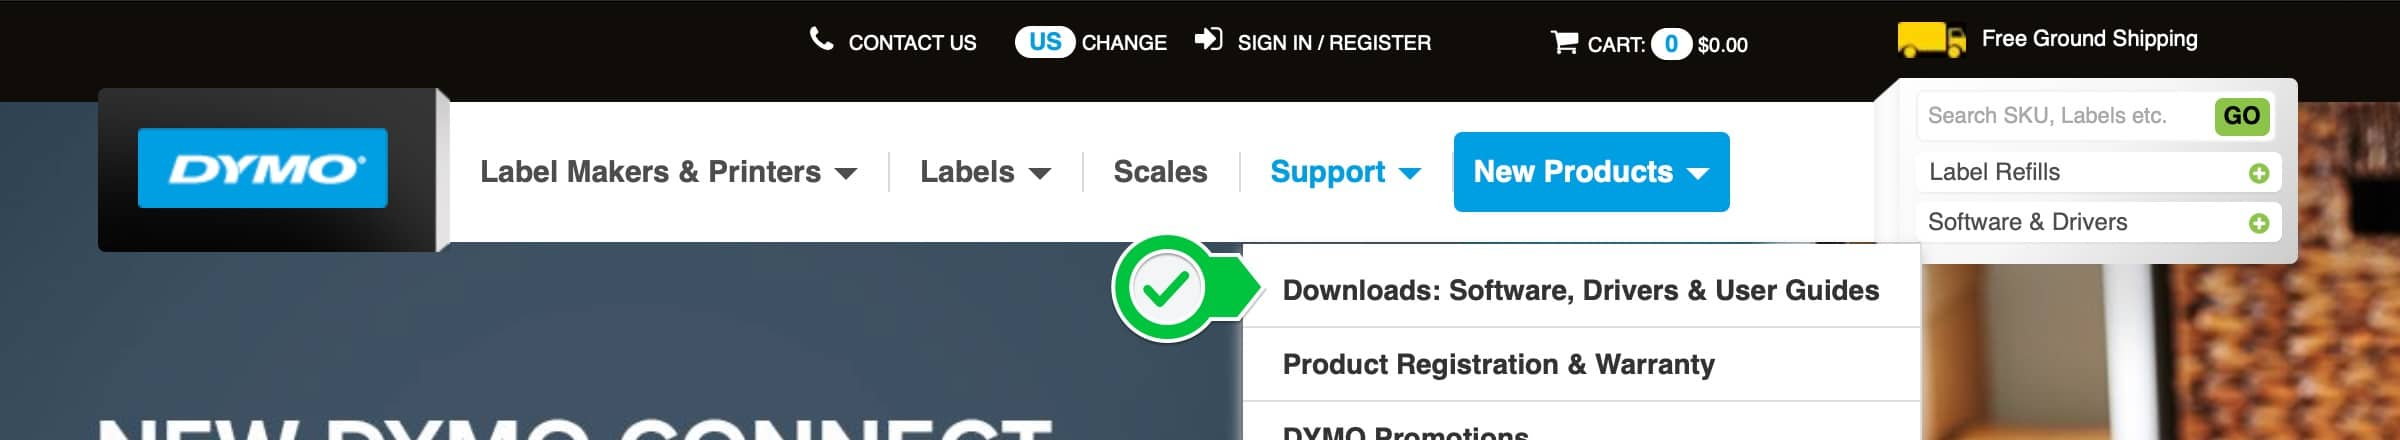 The DYMO web site. Click Support, then Downloads.